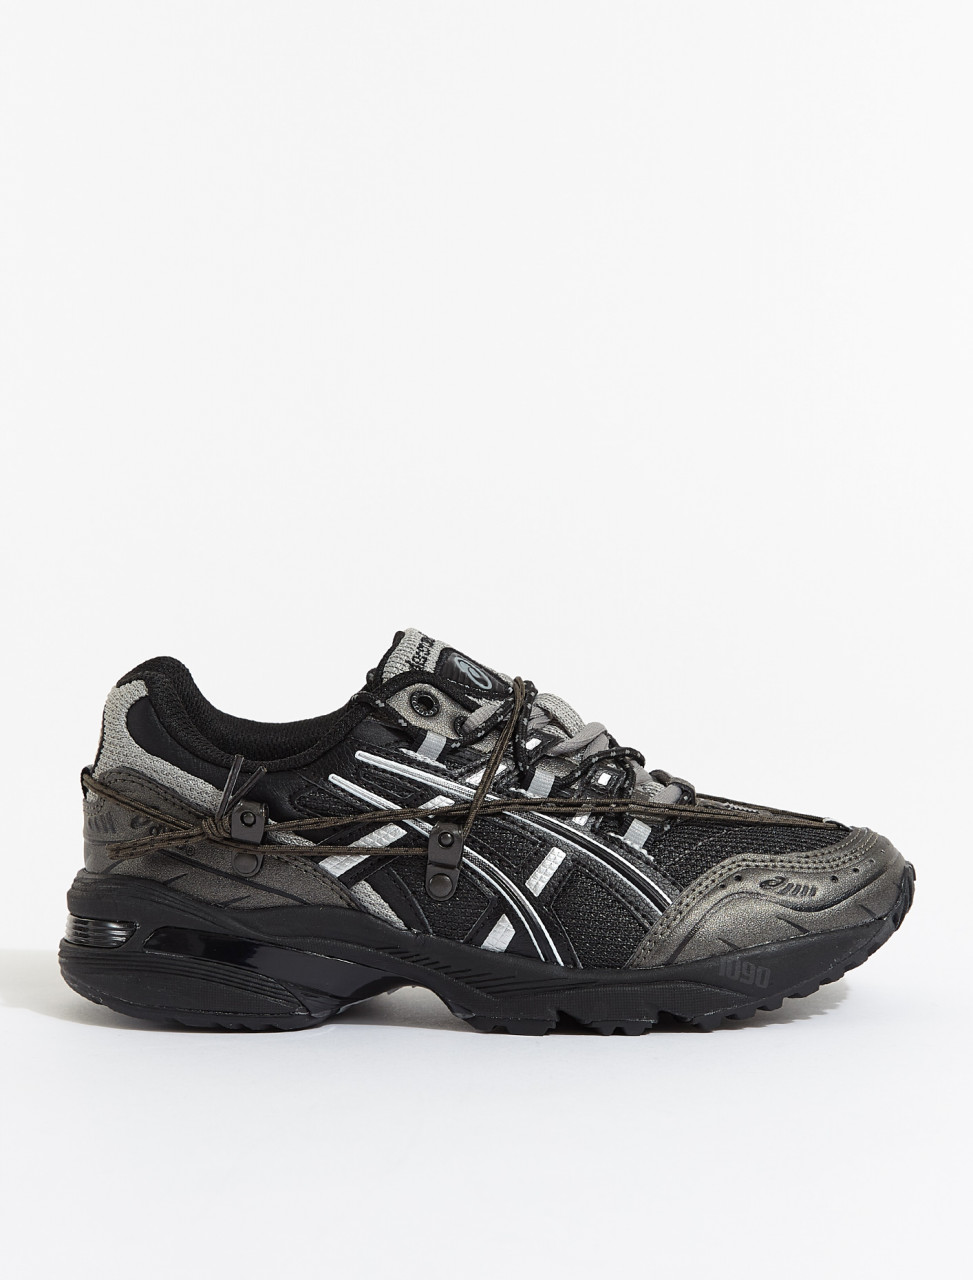 1203A115-006 ASICS GEL 1090 BLACK SILVER